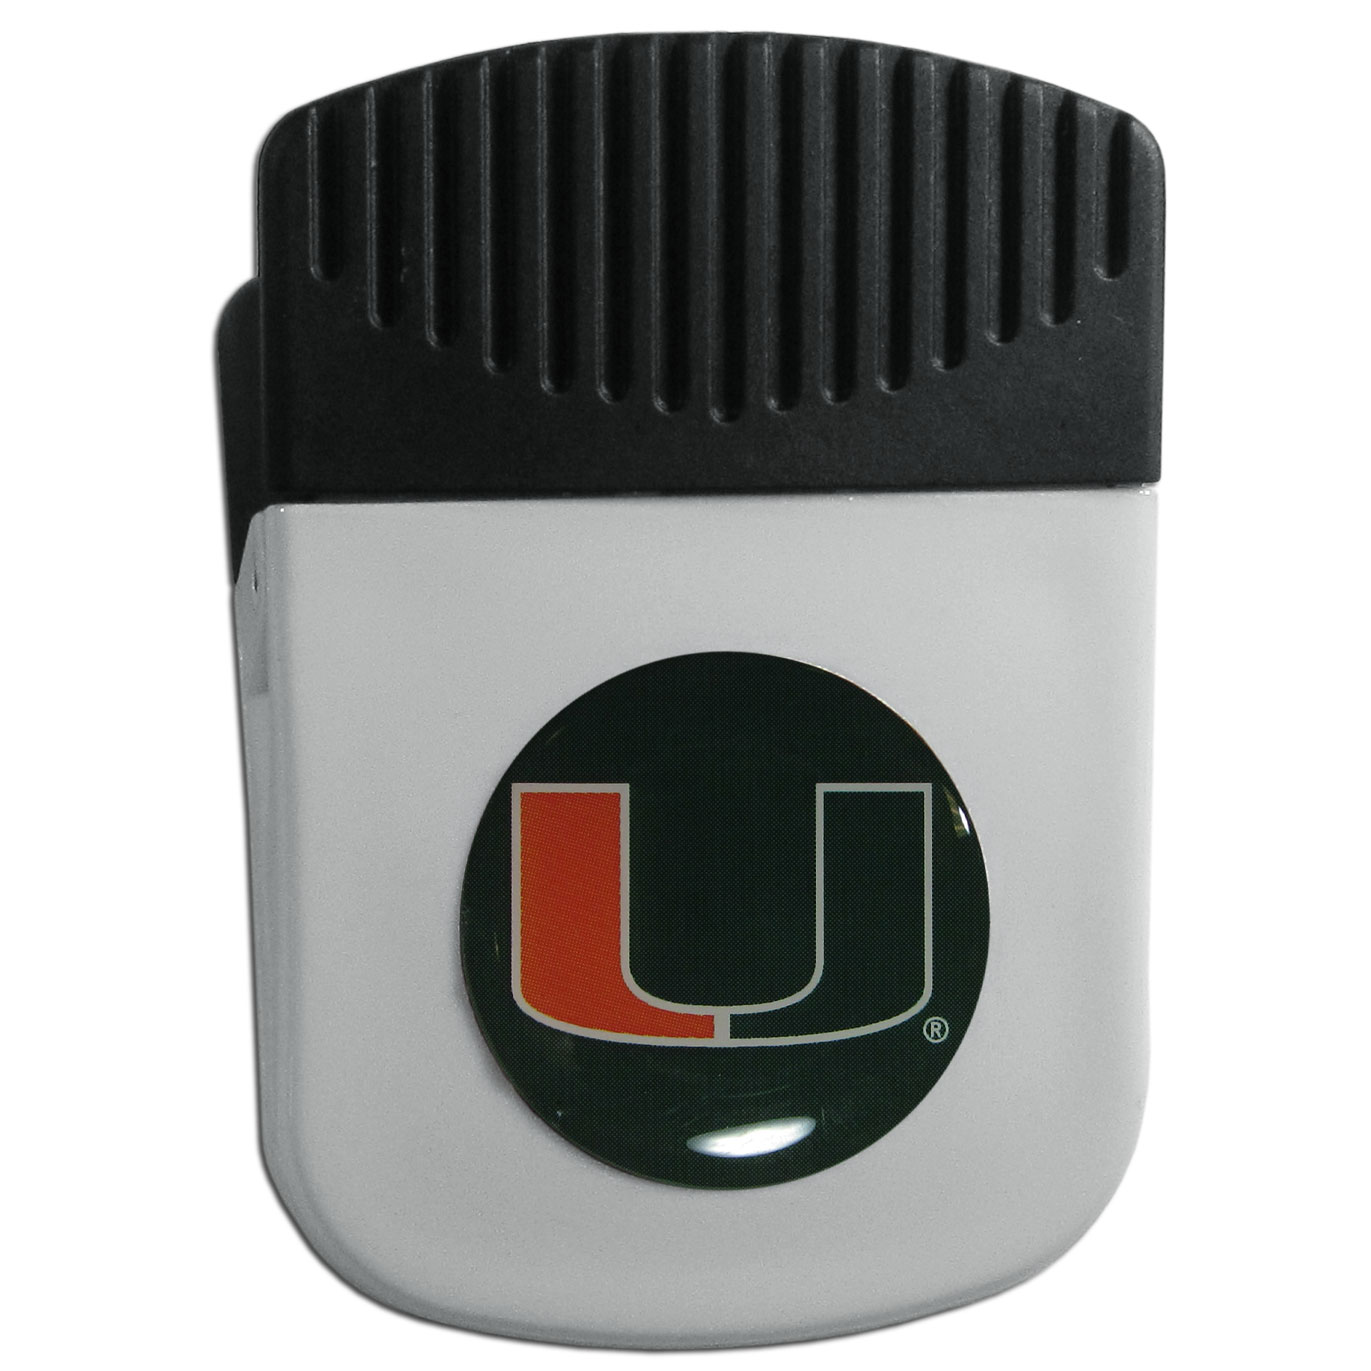 Miami Hurricanes Chip Clip Magnet - Use this attractive clip magnet to hold memos, photos or appointment cards on the fridge or take it down keep use it to clip bags shut. The magnet features a domed Miami Hurricanes logo.